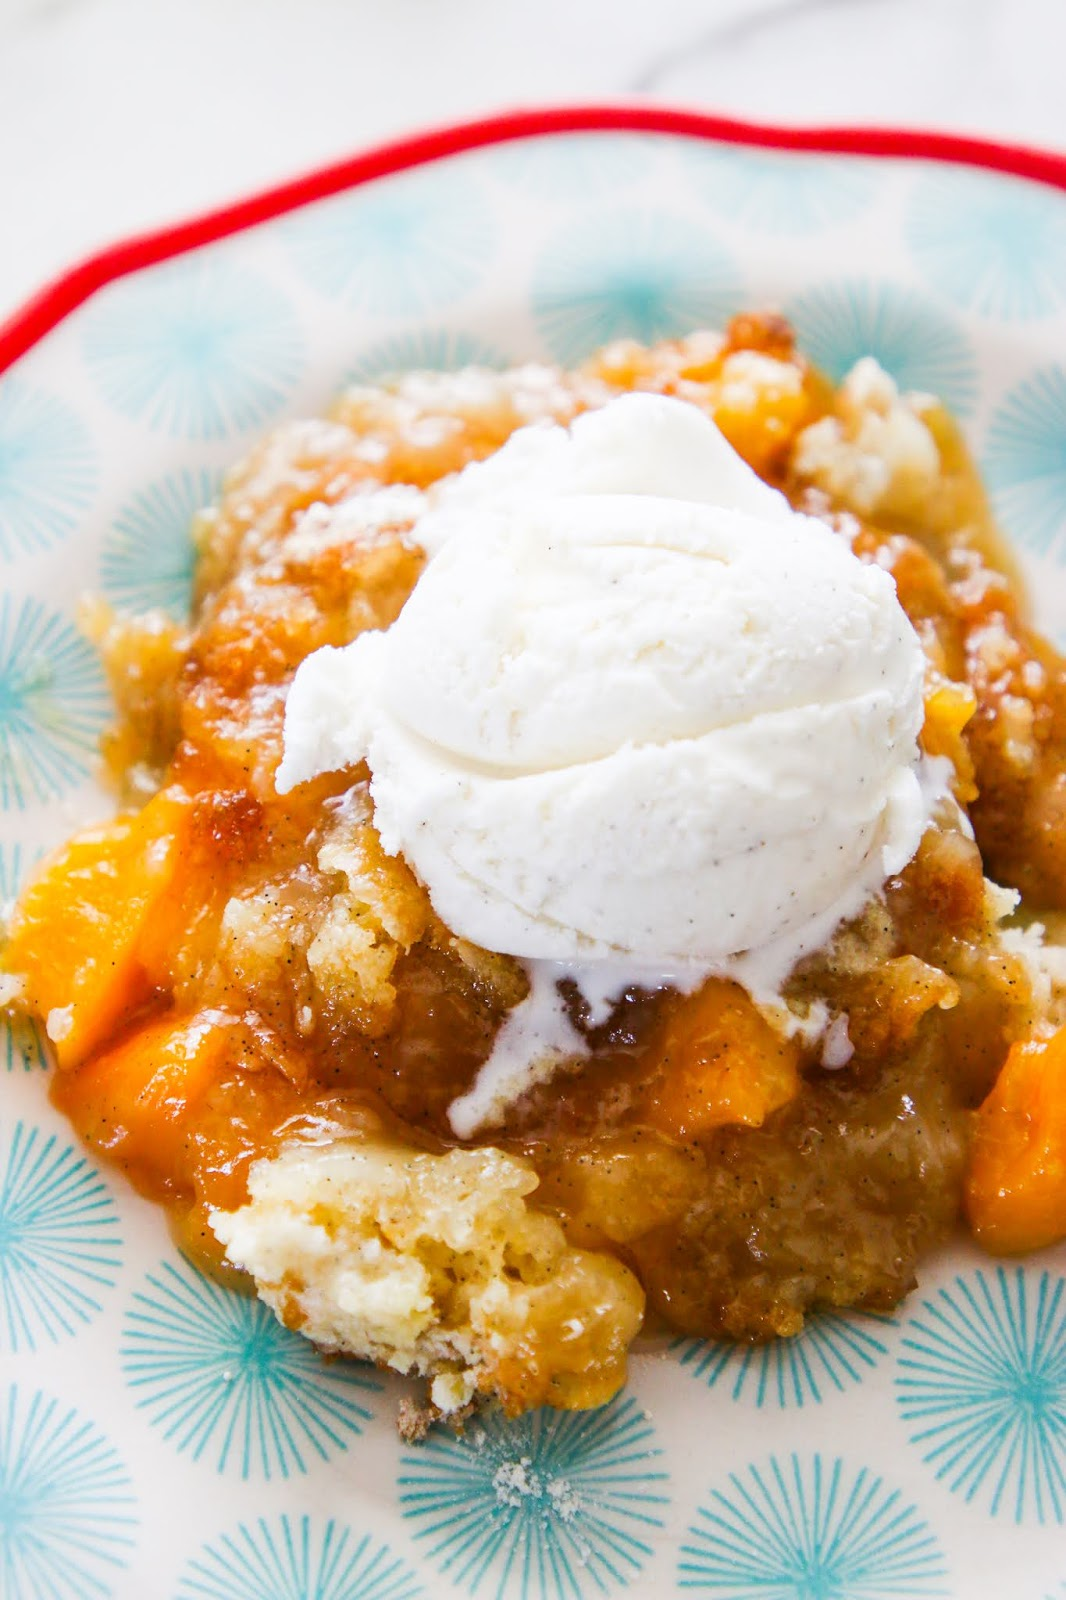 The best peach cobbler recipe. Perfect summer BBQ dessert recipe. Recipes that use peaches. Best recipes for peaches. Peach cobbler with a yellow cake mix. Four ingredient peach cobbler. Paula dean peach cobbler recipe. Best ever southern peach cobbler. Peach cobbler with pie crust. Old fashioned peach cobbler. Peach cobbler pie. Peach cobbler with frozen peaches. Pioneer woman peach cobbler with canned peaches. Yellow cake mix recipes. #peach #cobbler #peachcobbler #summer #dessert #bbq #baking #cakemix